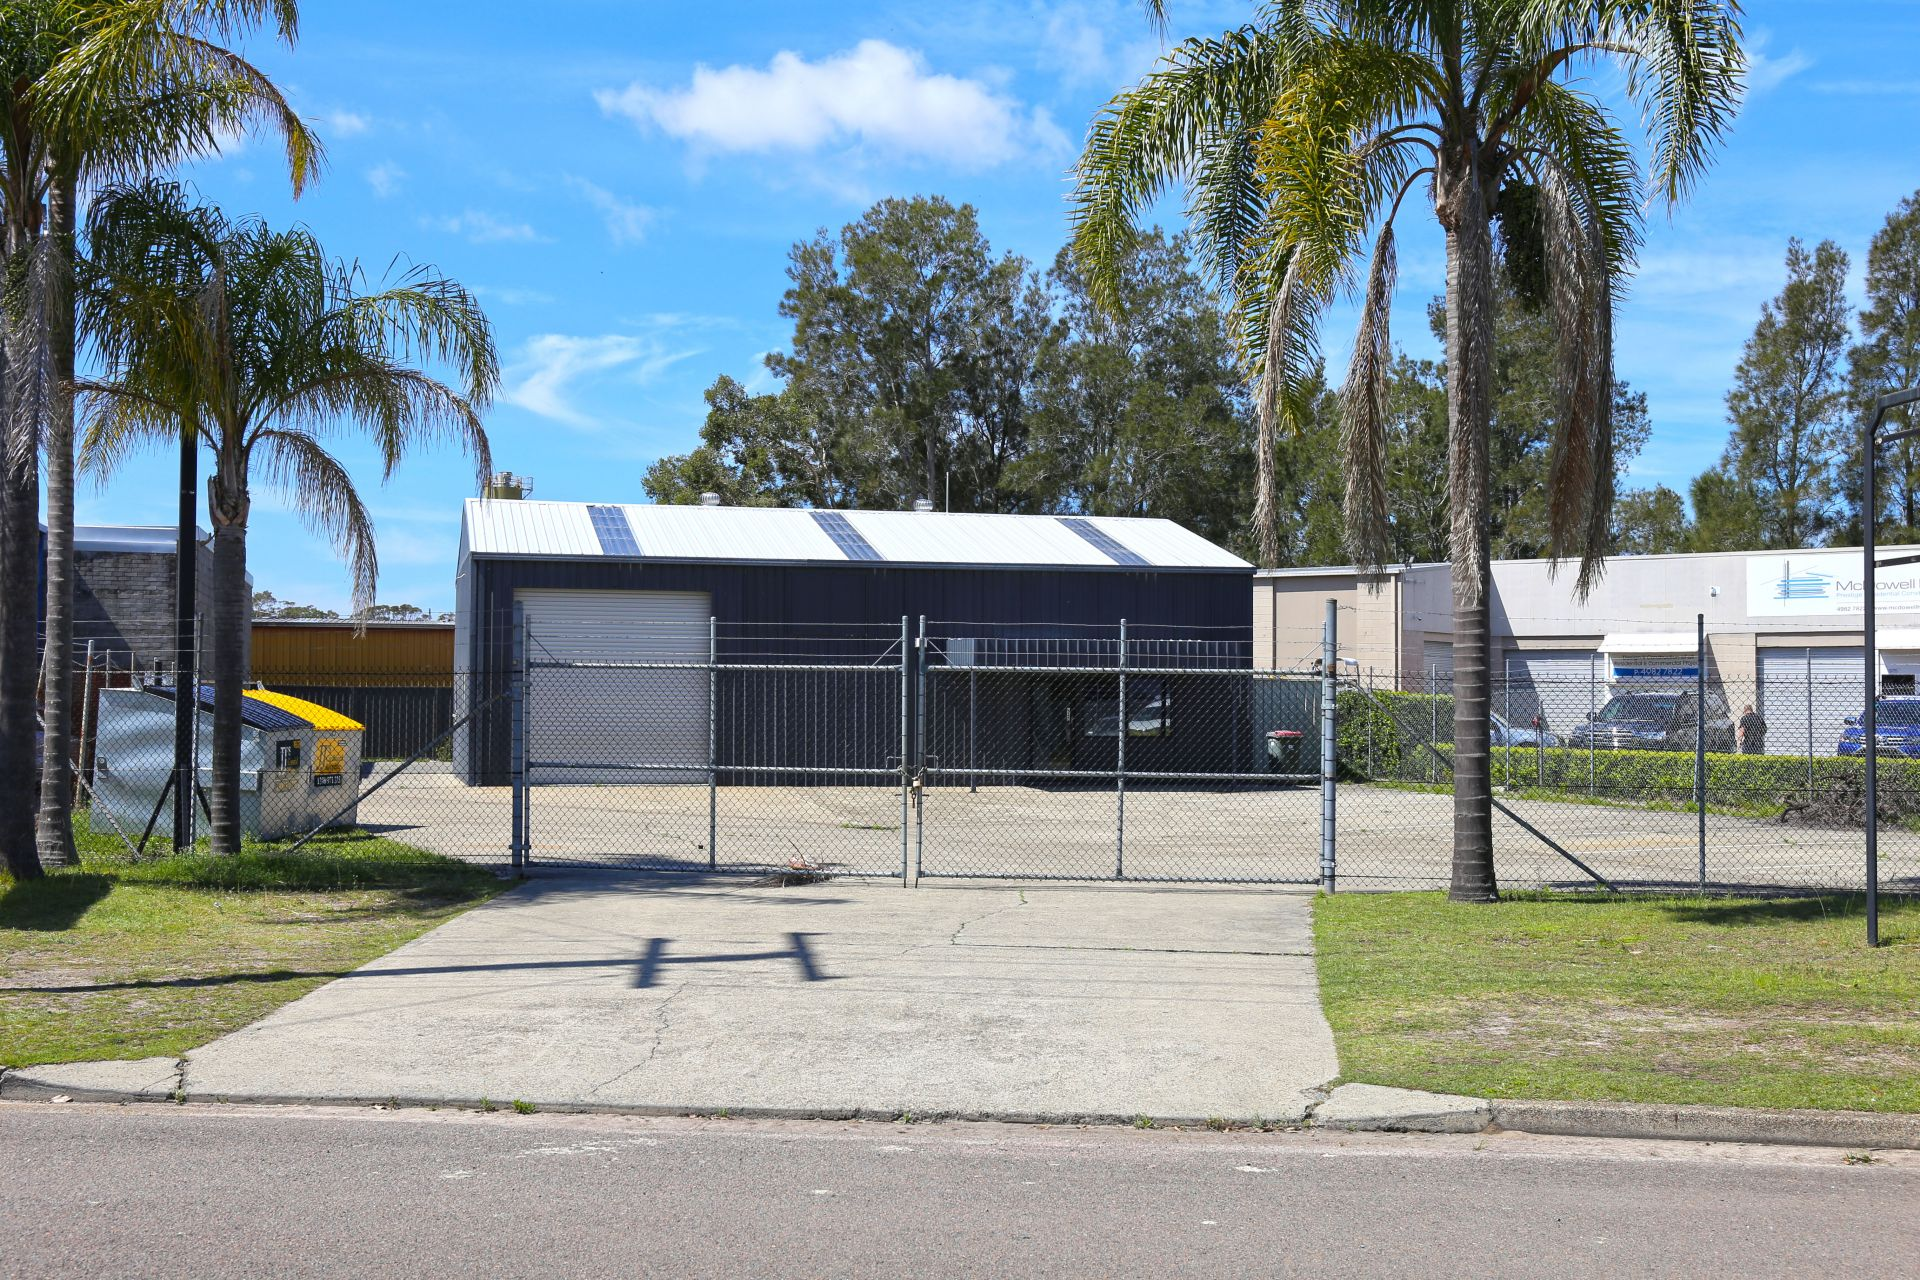 PRIME COMMERCIAL SITE IN SOUGHT AFTER LOCATION.